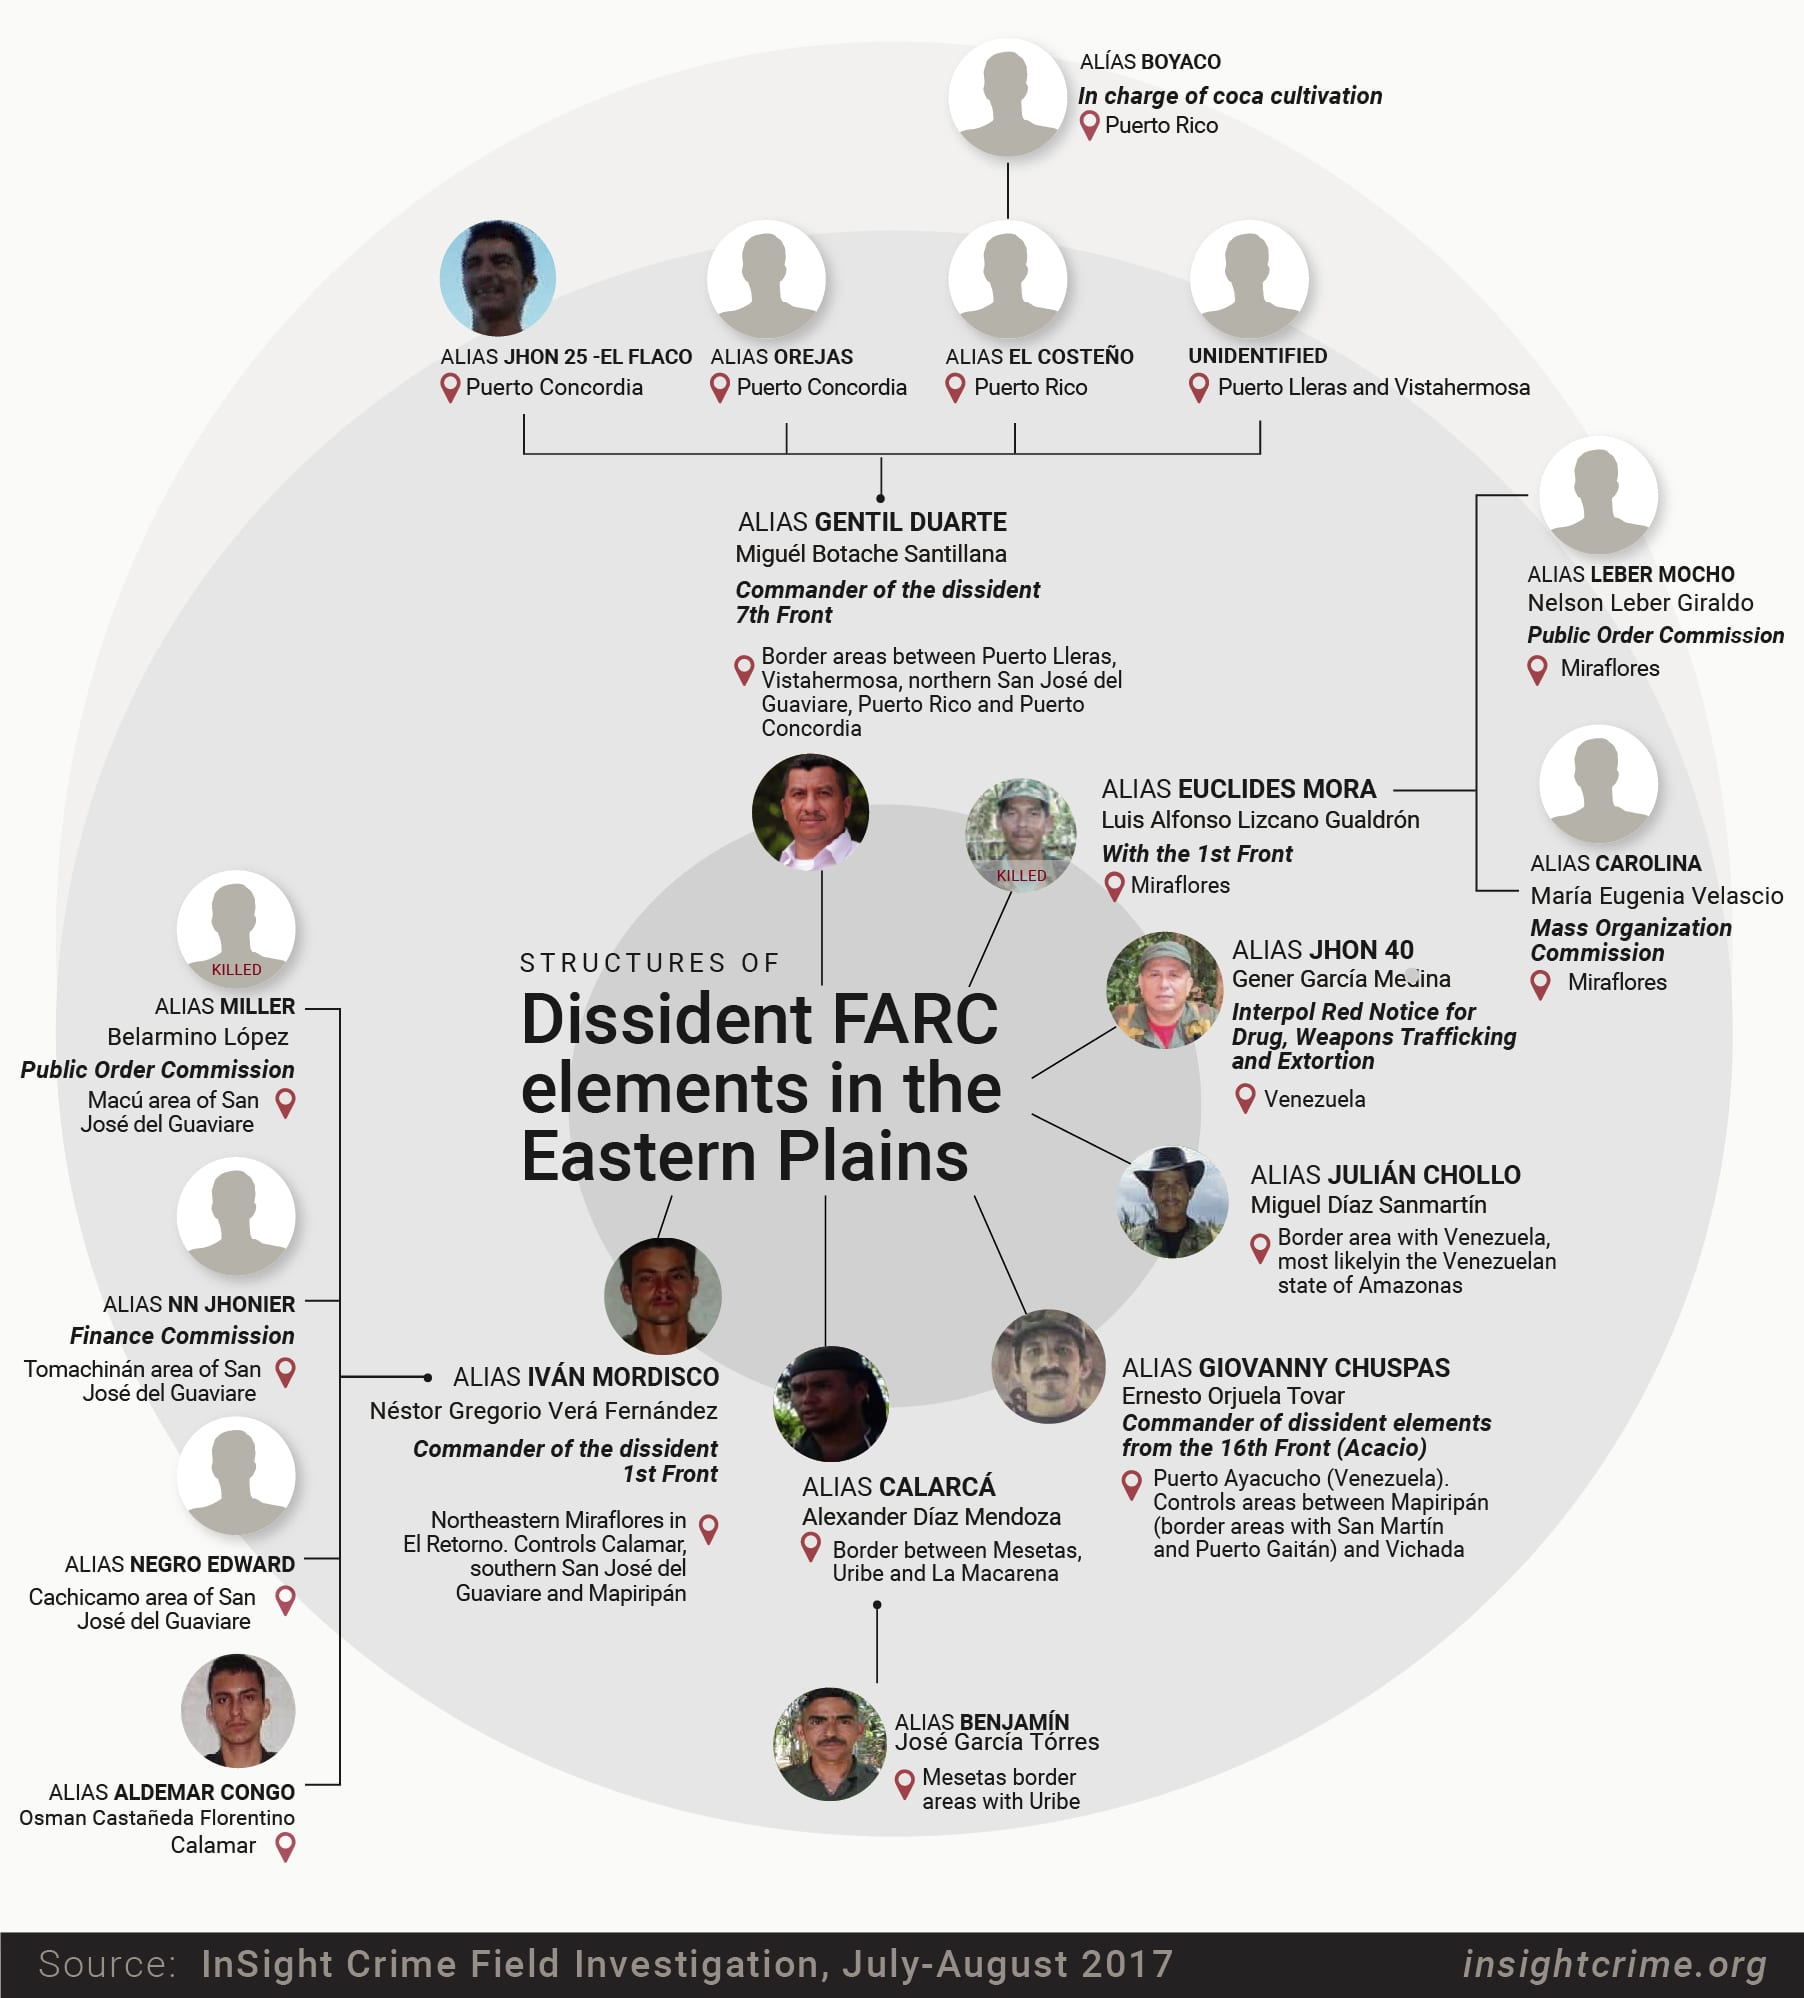 17-09-29-Colombia-Dissident Chart